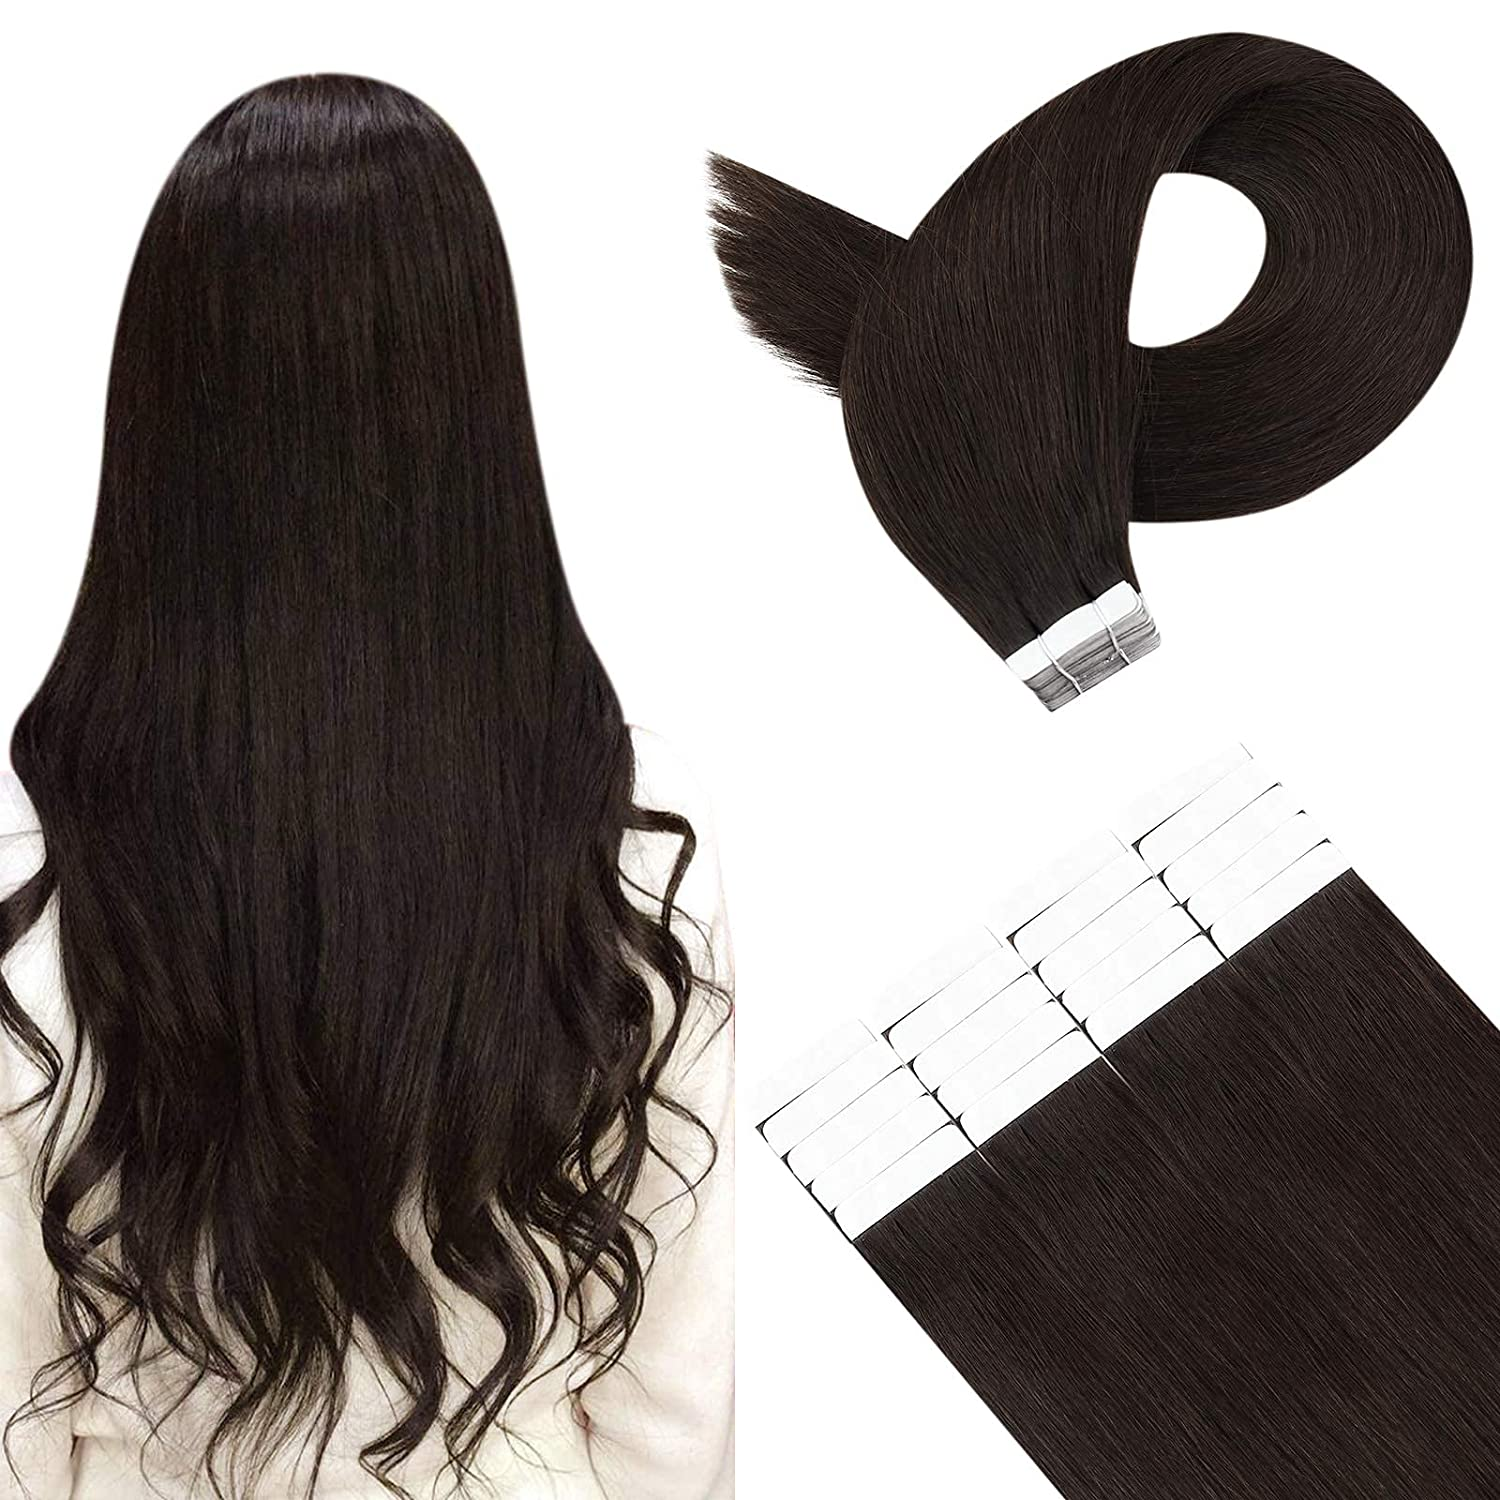 YoungSee Skin Weft Invisible Tape Max 89% Max 73% OFF OFF in Extensions Hair Human